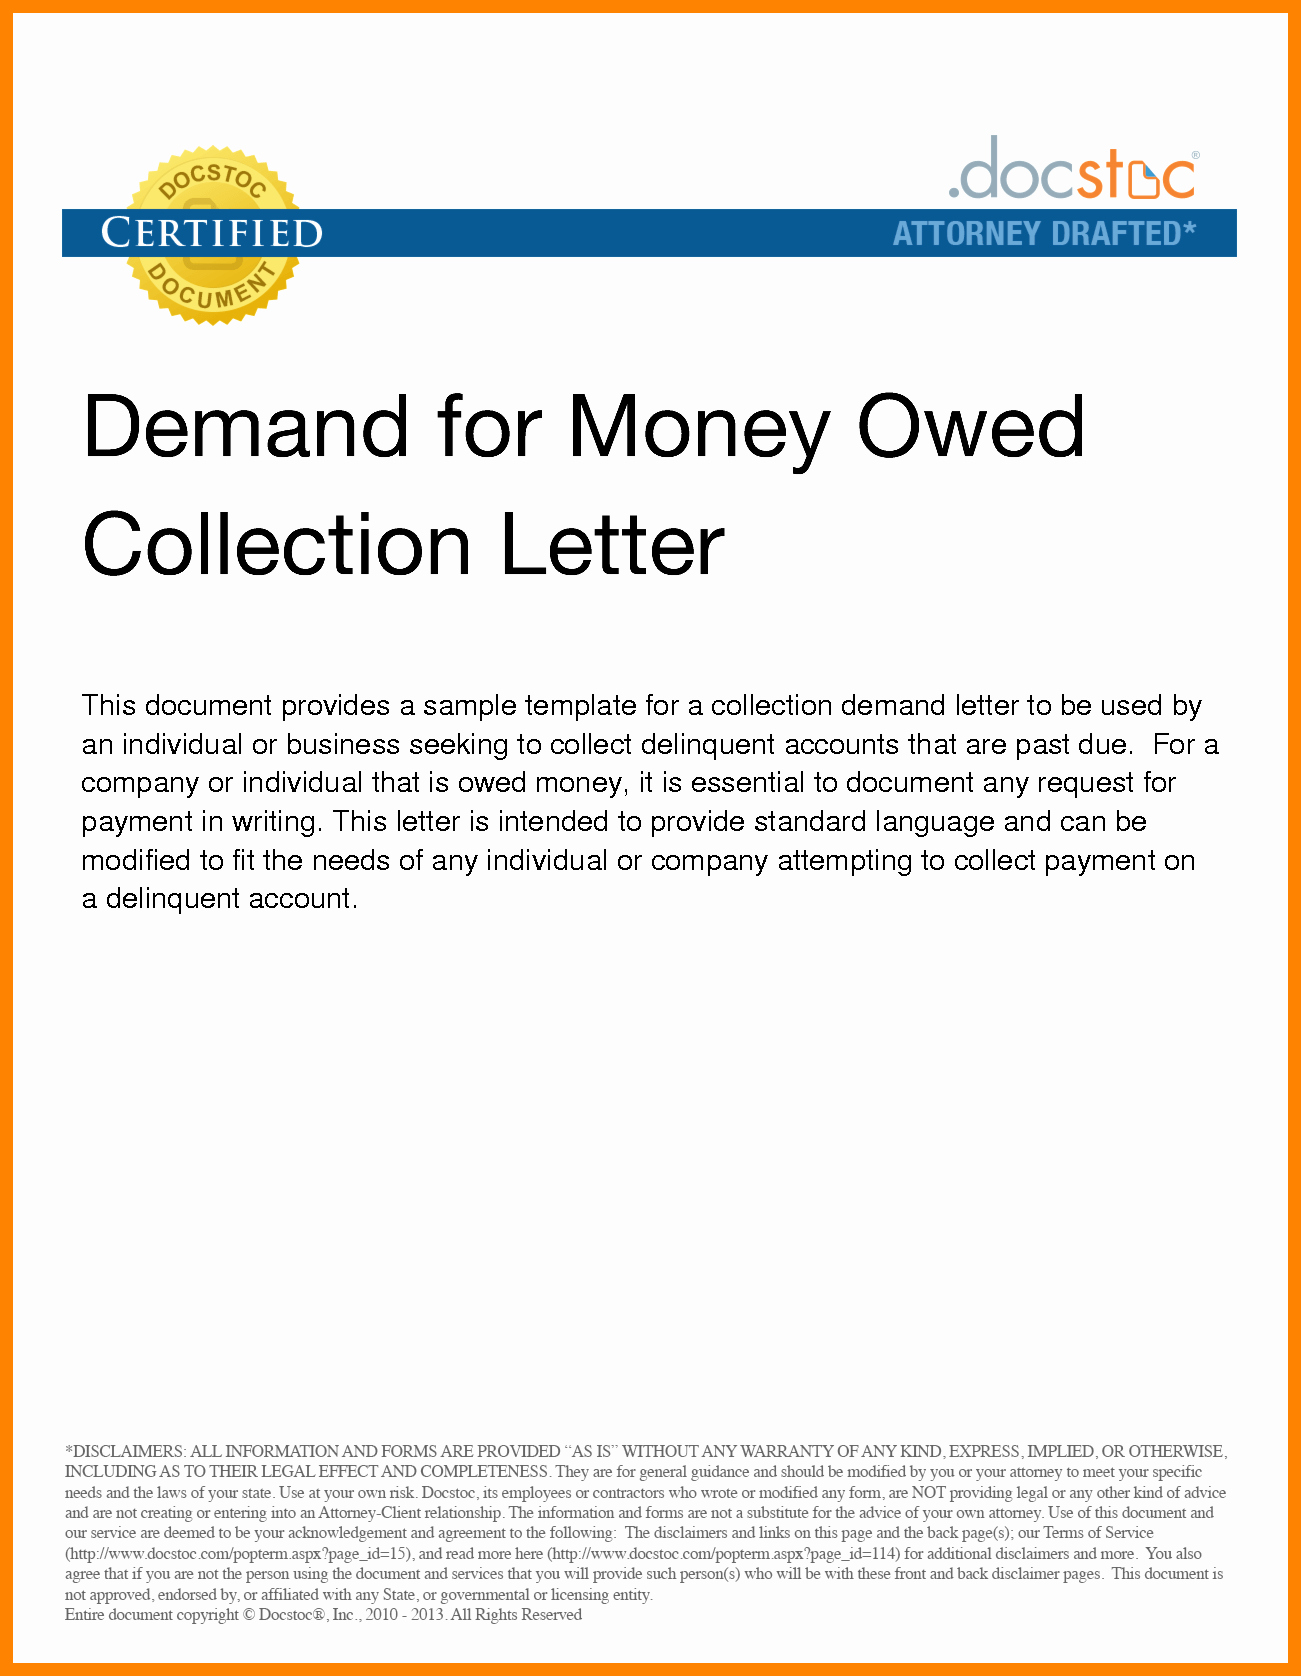 Demand Letter for Money Owed Best Of Sample Demand Letter for Money Owed